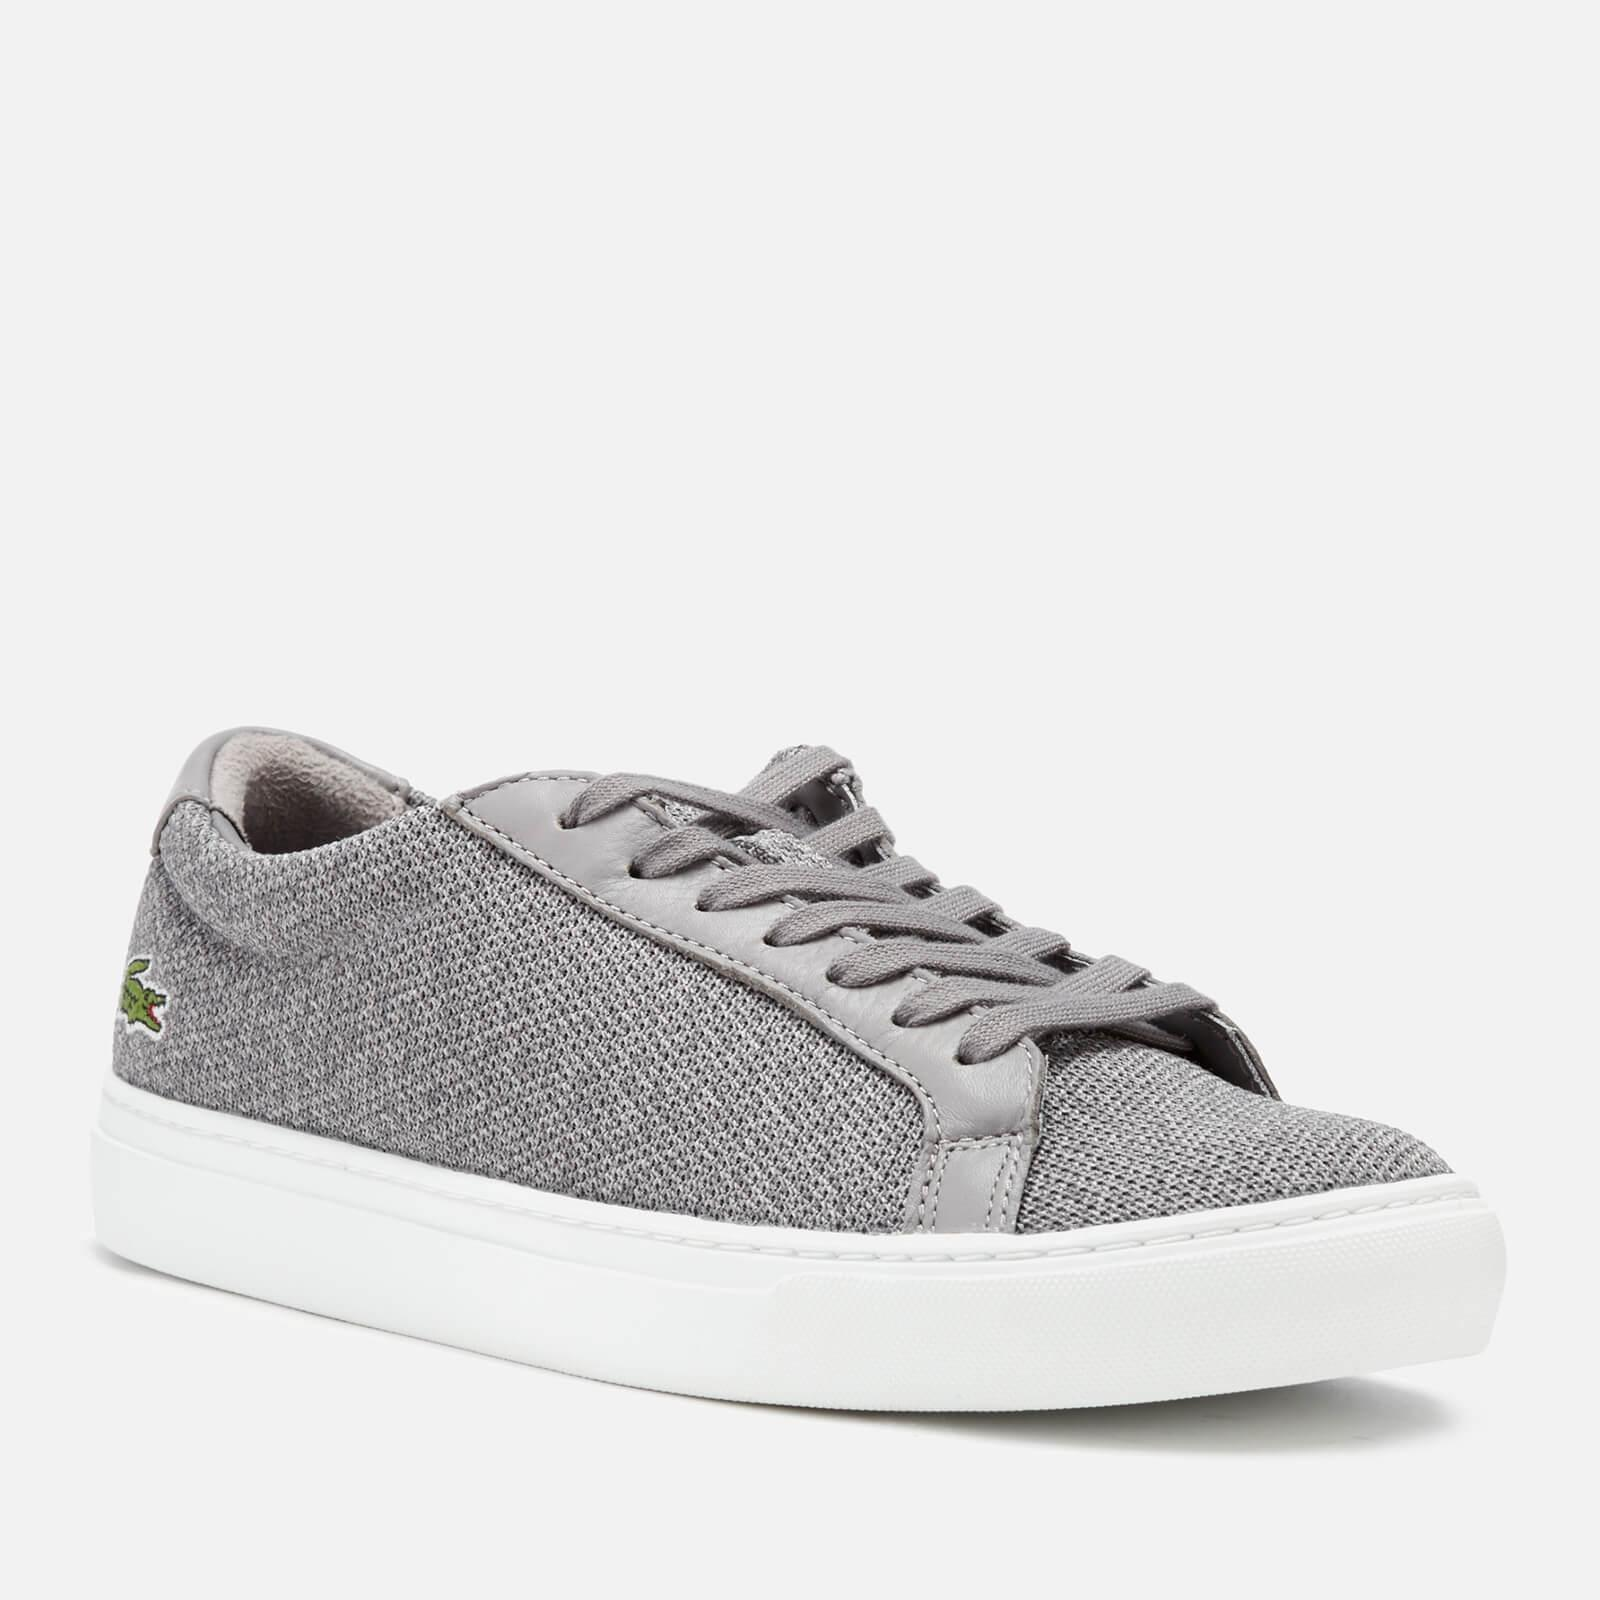 6c7f70c1a Lacoste L.12.12 317 3 Trainers in Gray for Men - Lyst